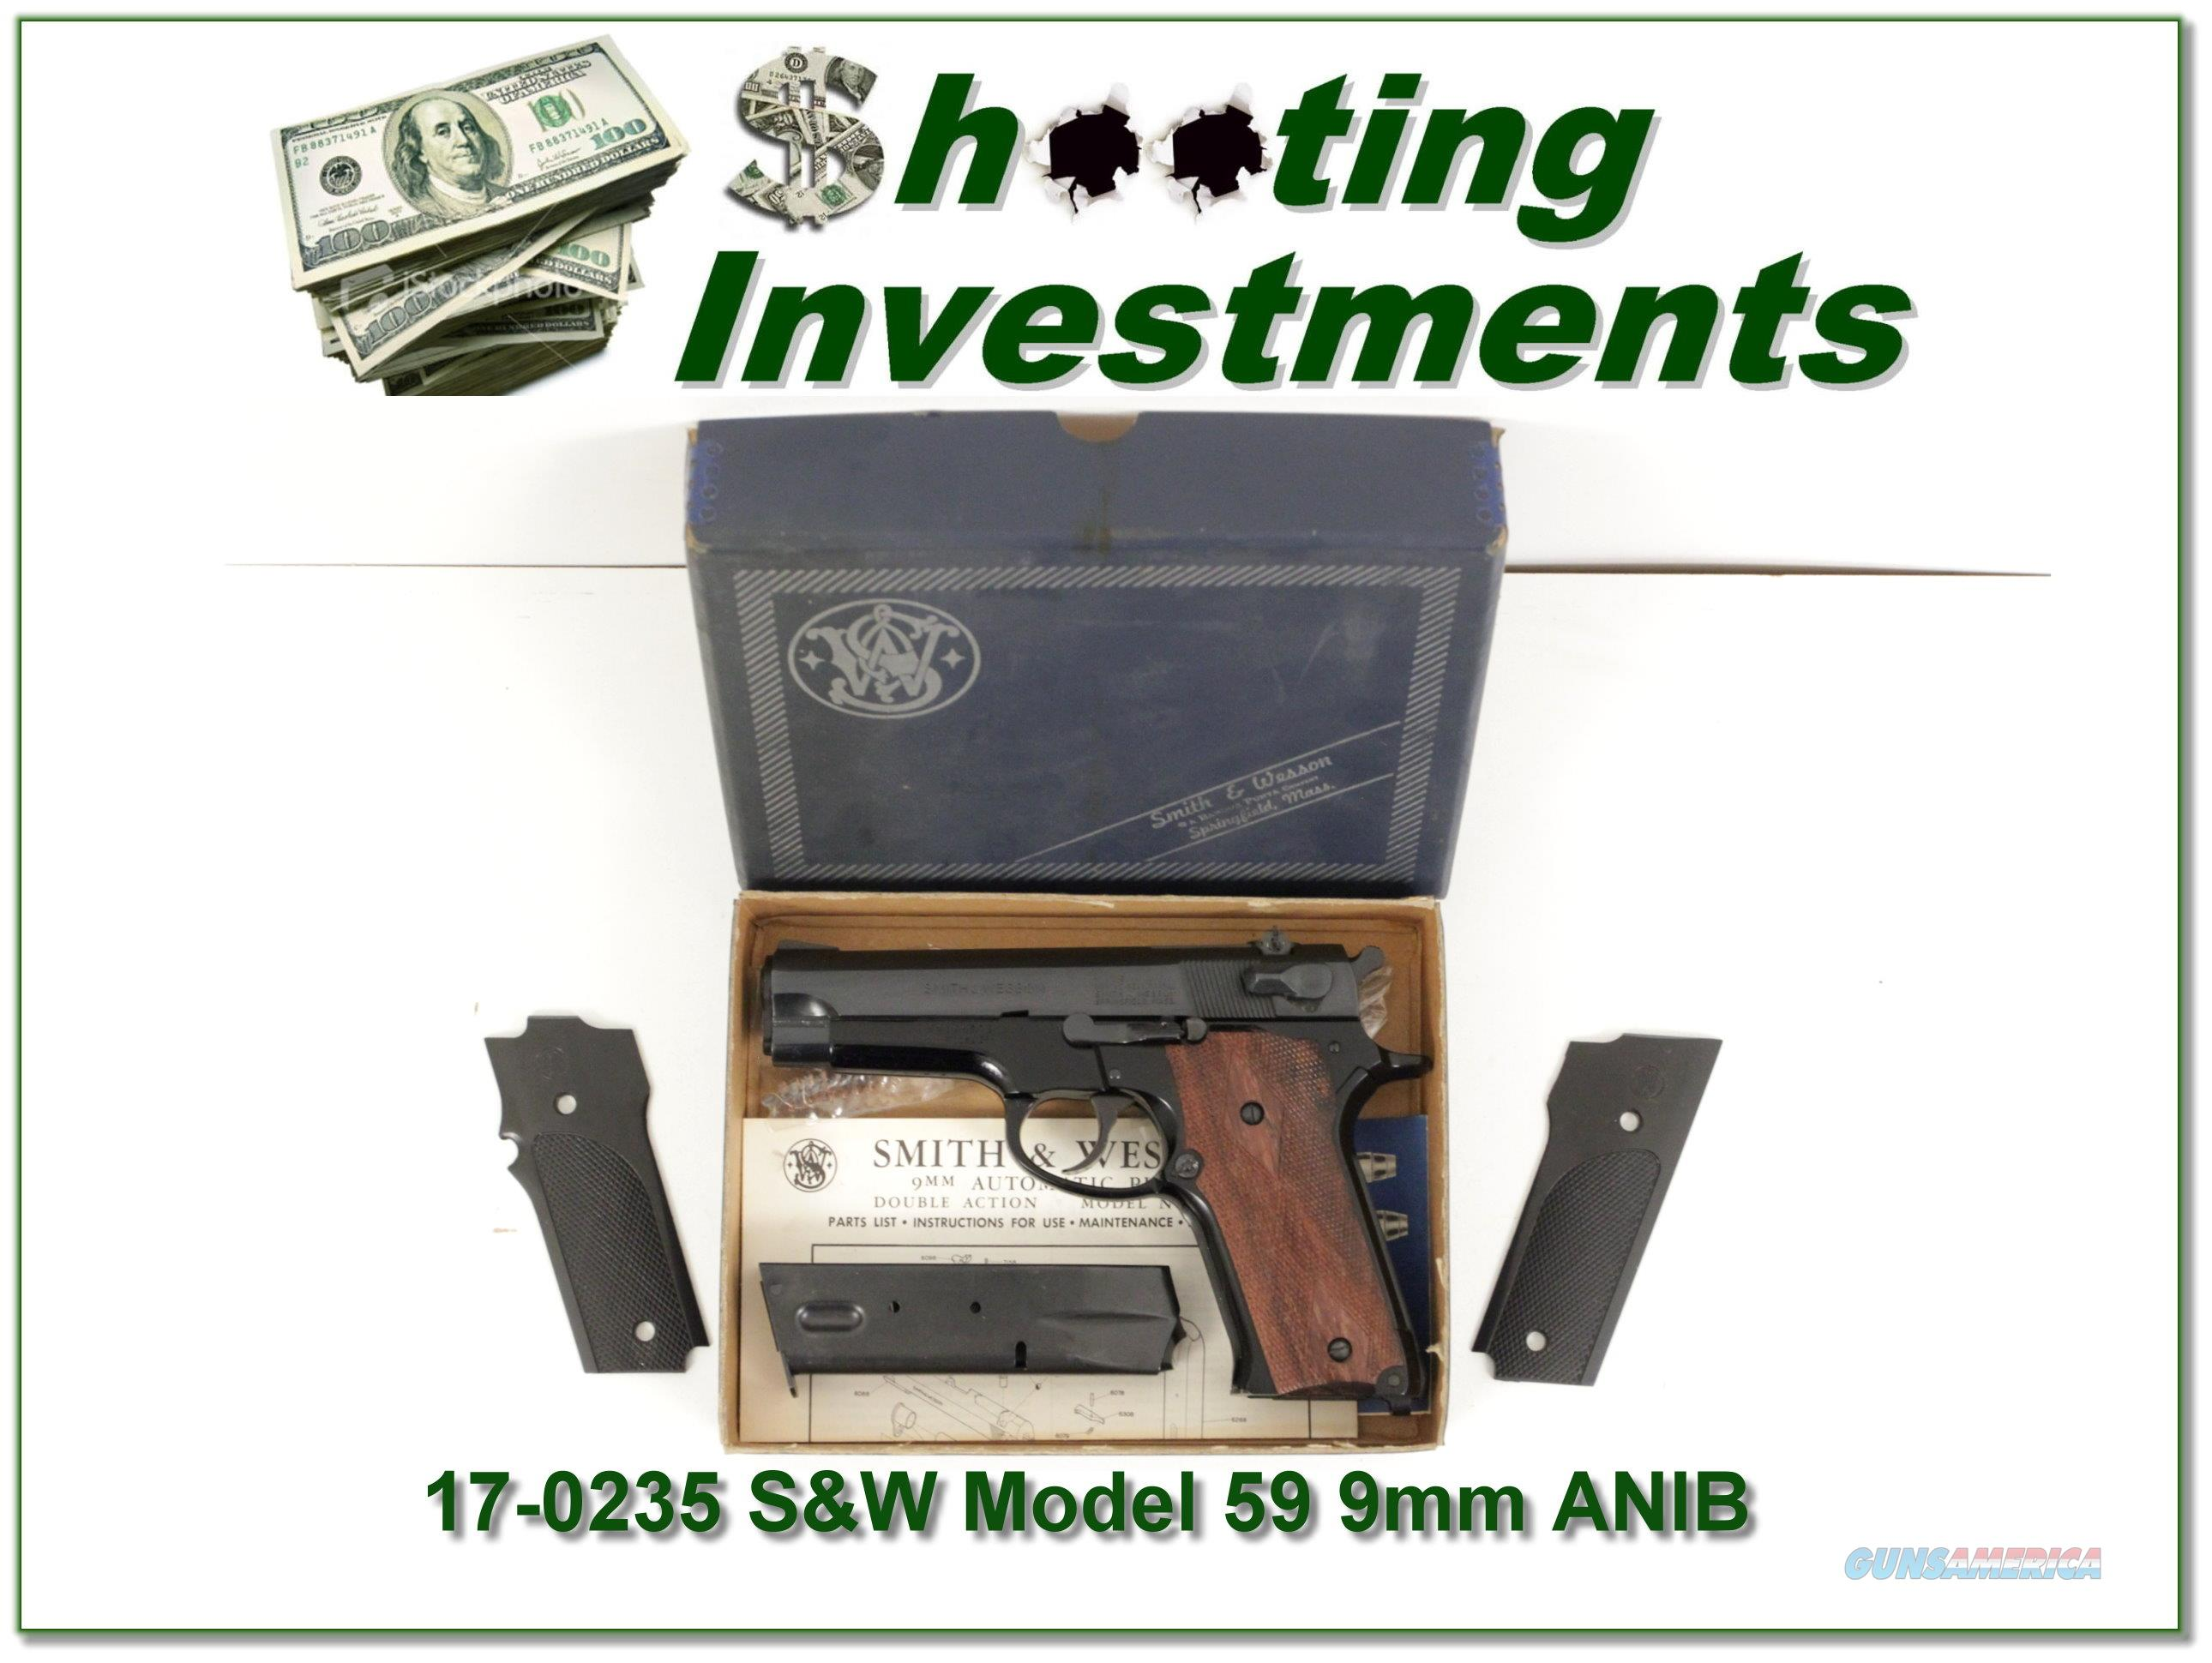 Smith & Wesson 59 9mm Exc Cond in box!  Guns > Pistols > Smith & Wesson Pistols - Autos > Steel Frame